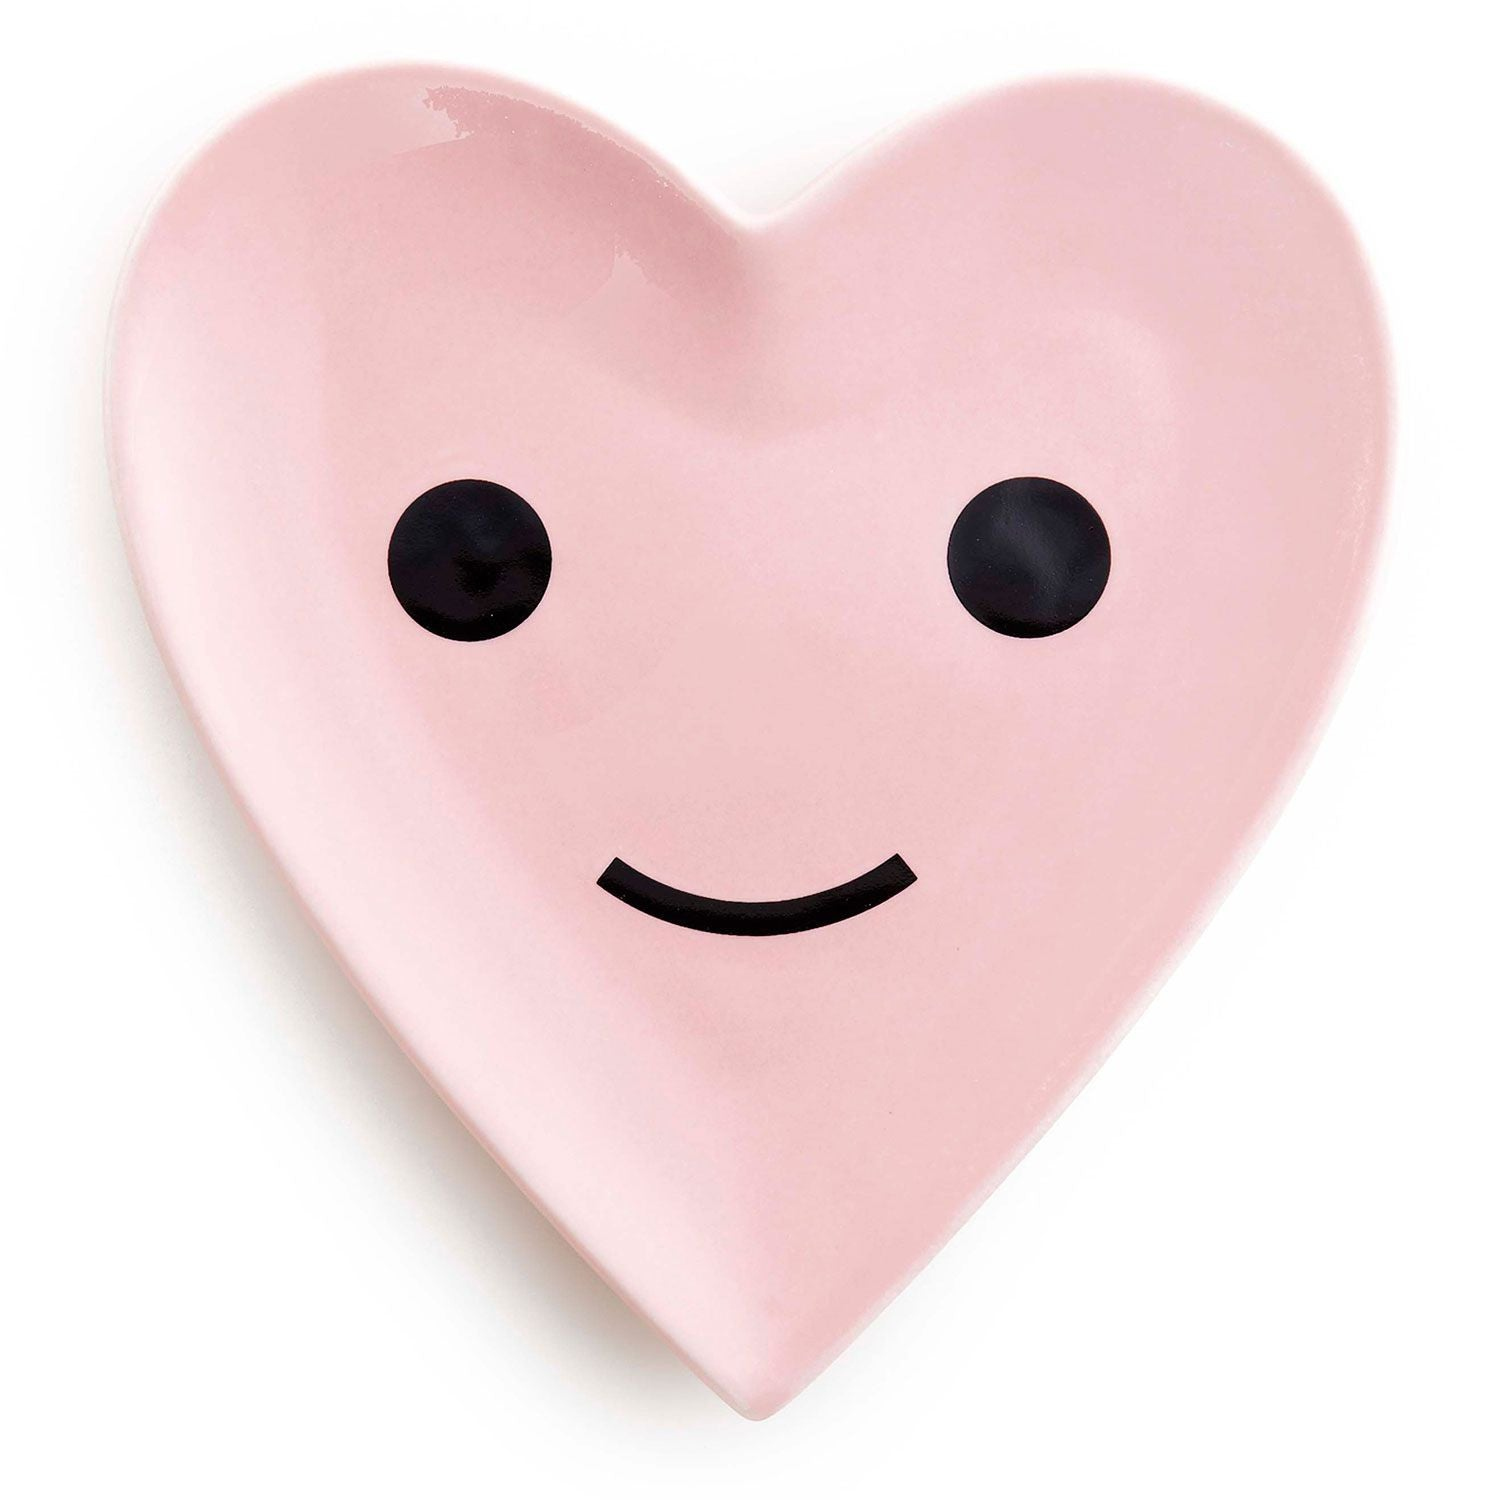 Happy Heart Porcelain Dish